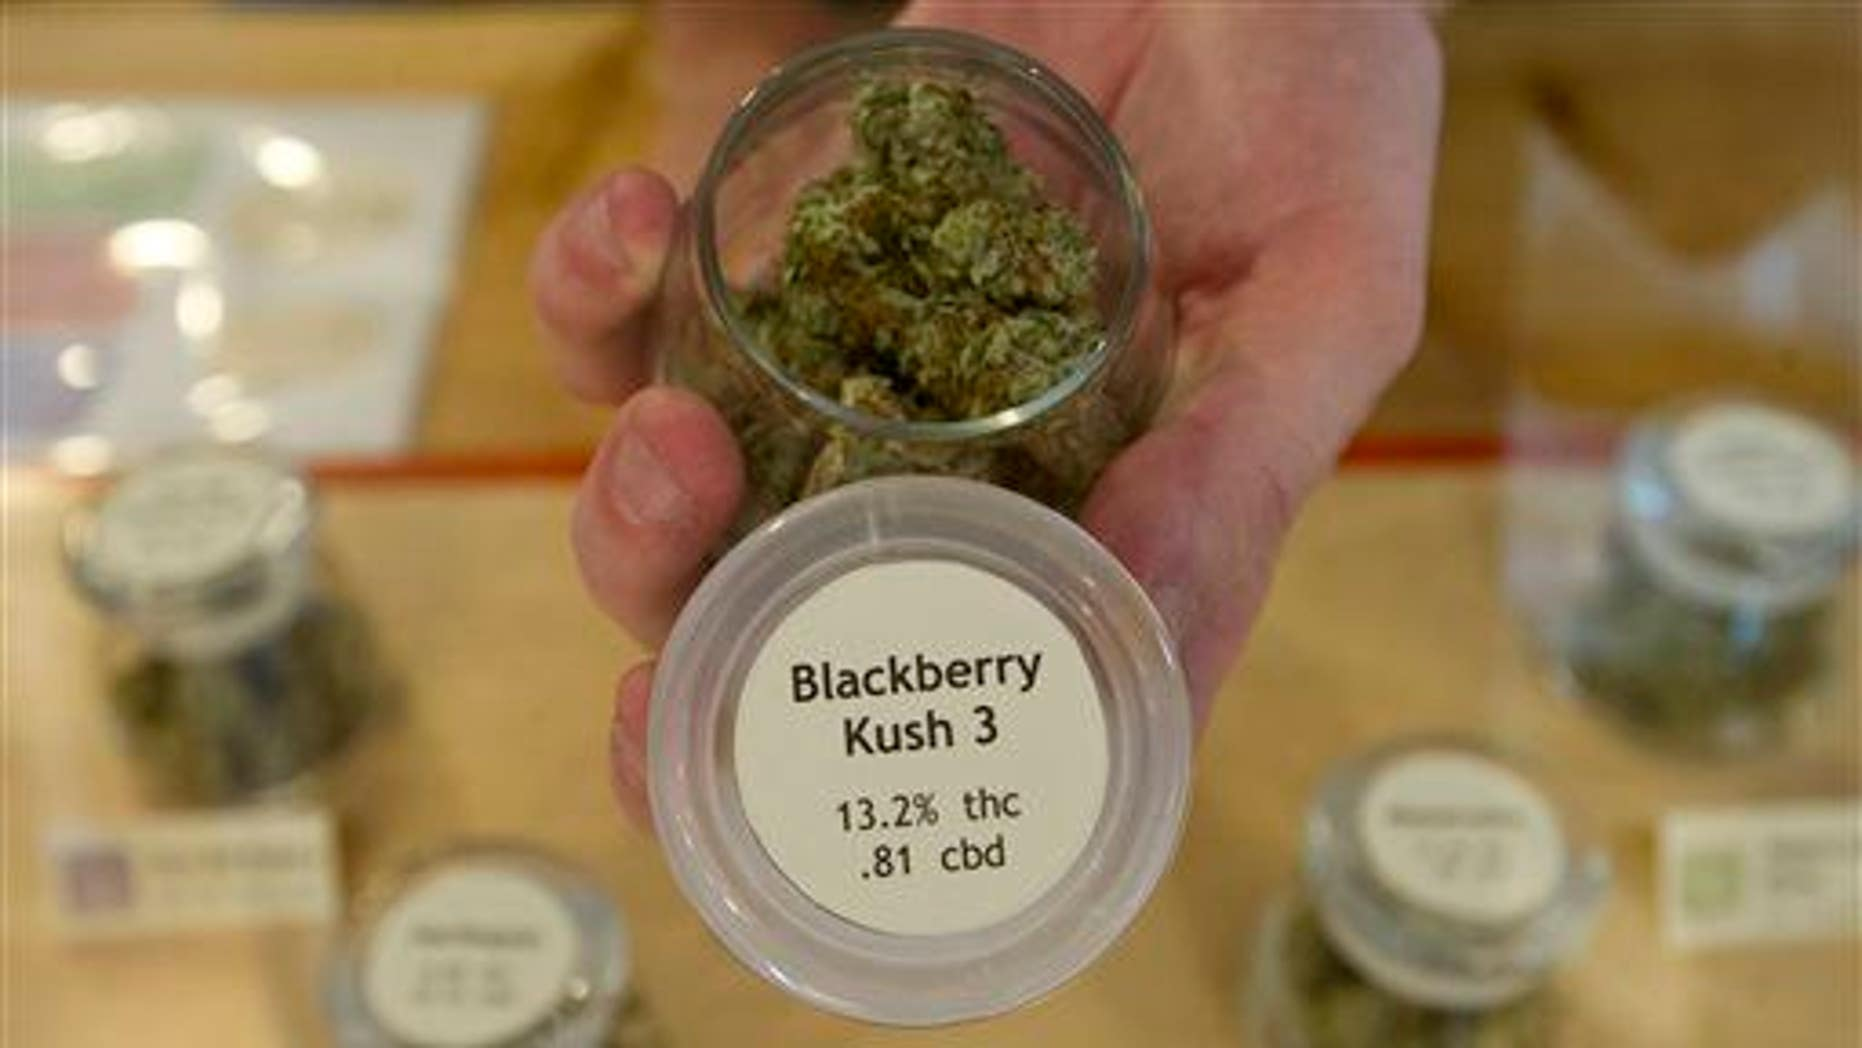 In this photo taken on July 2, 2014, an employee at Bloom Well, a medical marijuana dispensary in Bend, Ore., holds a container of cannabis that is marked with the THC and CBD results.